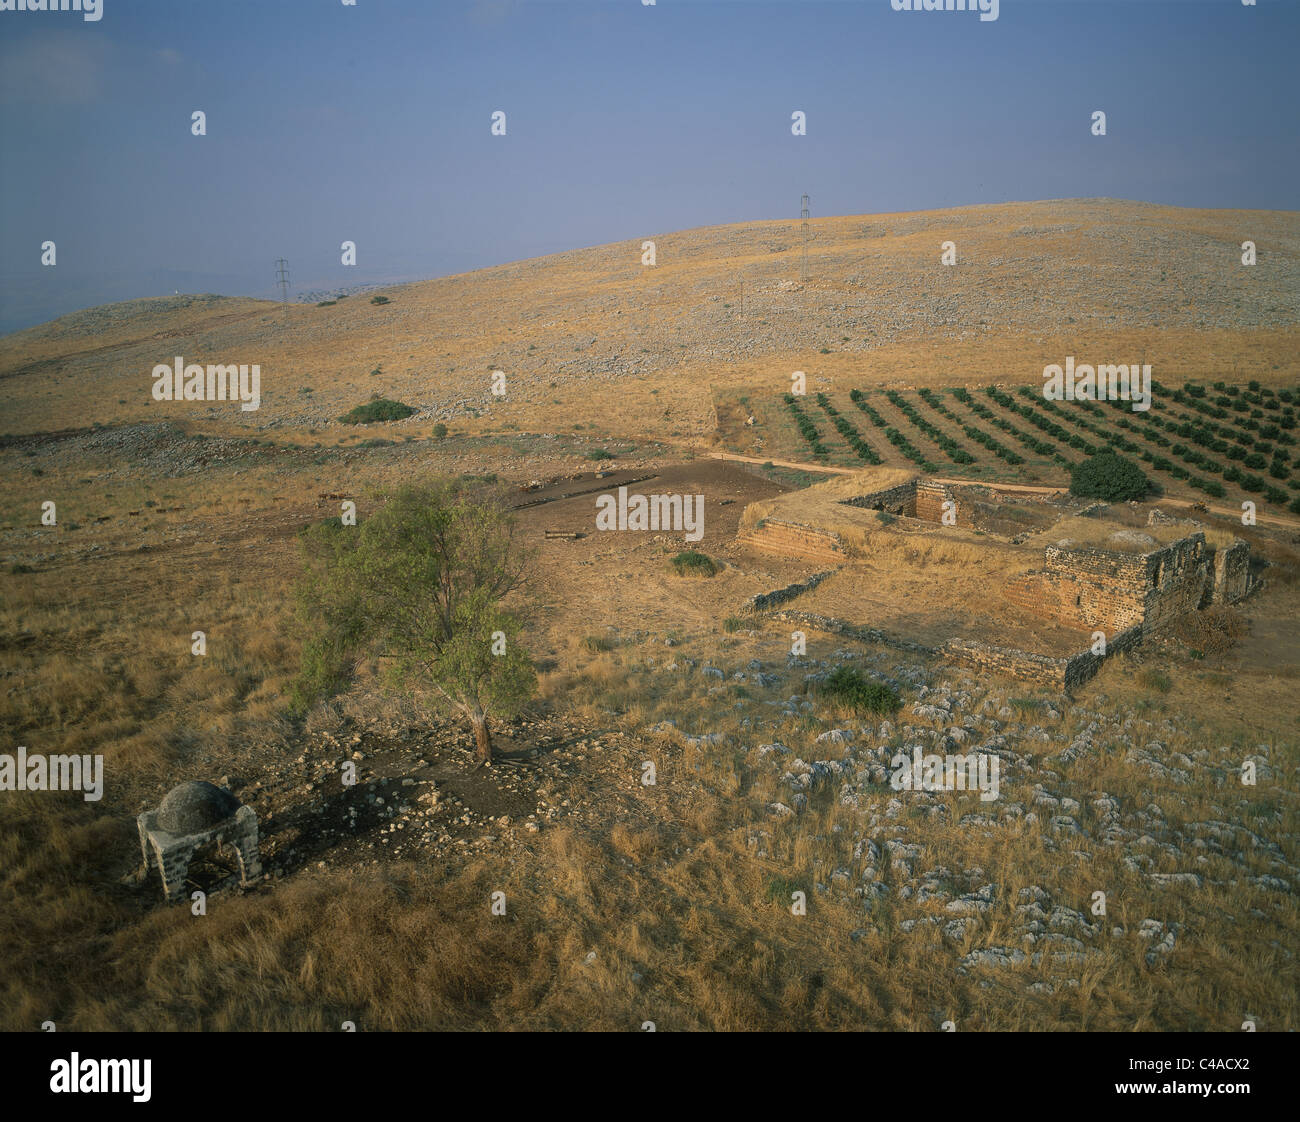 Aerial photograph of Jubb Yusuf in the Upper Galilee - Stock Image